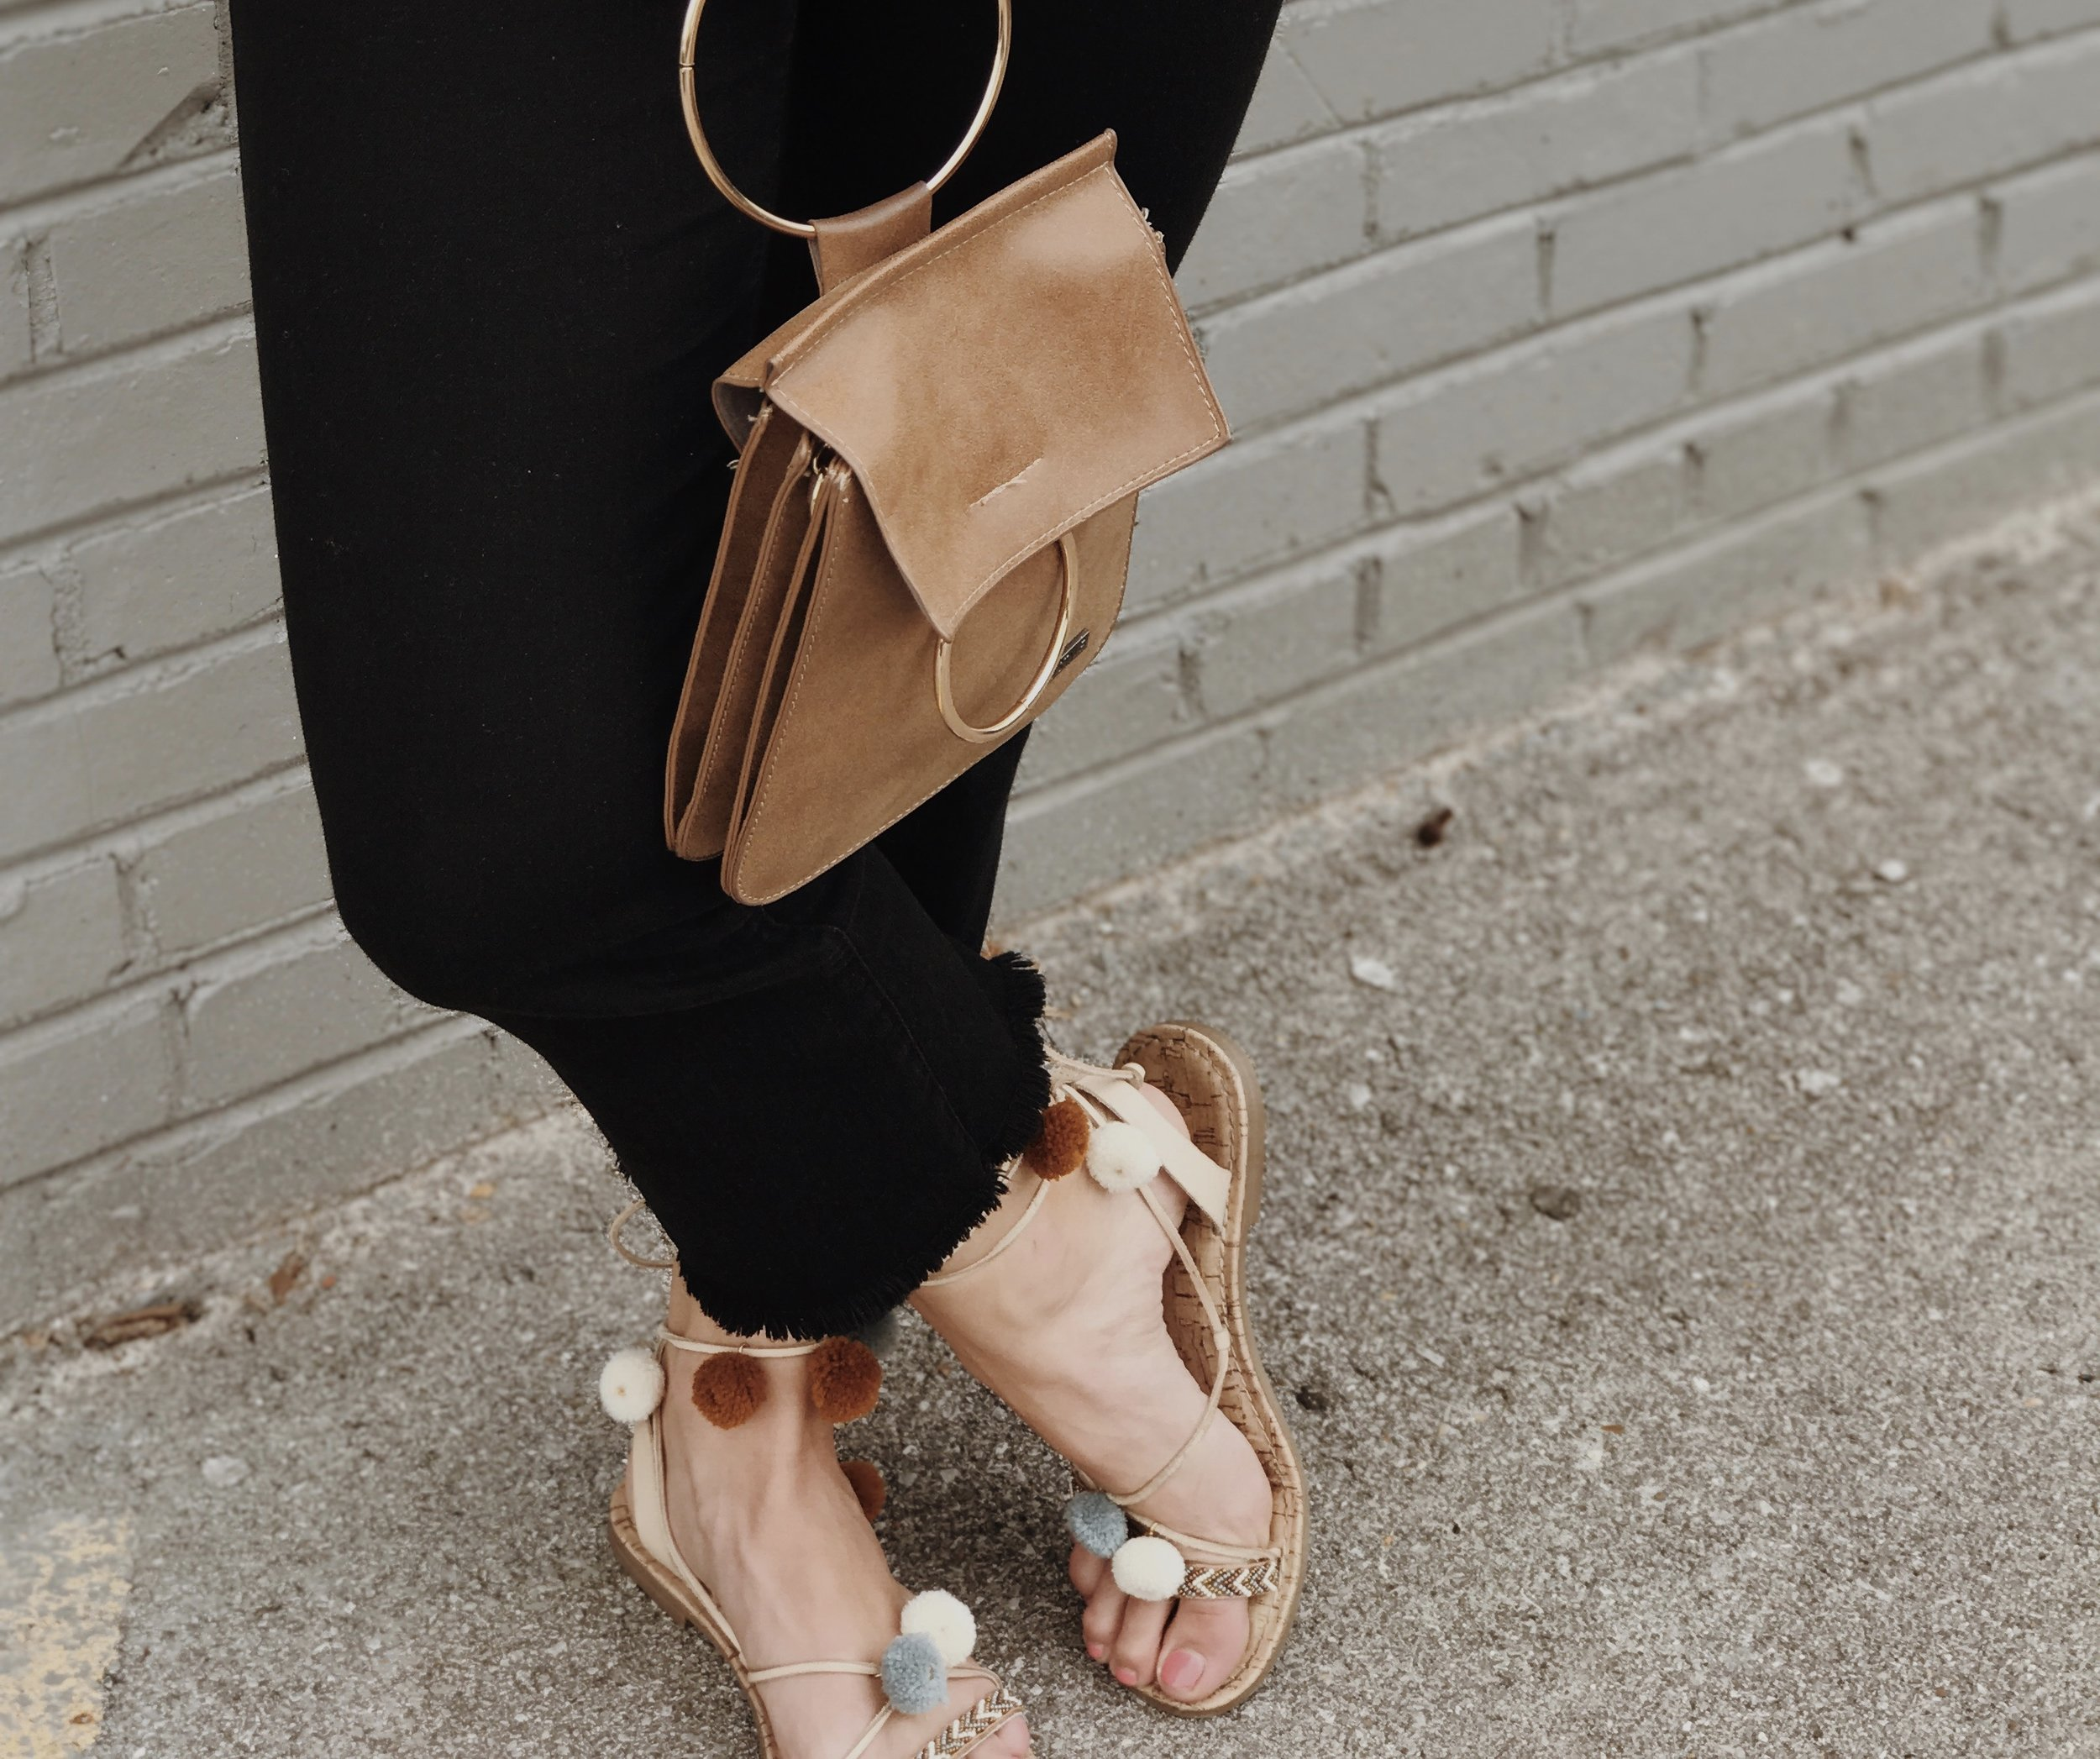 details... - its all in the details. these fun wrap sandals and gold ring mini bag compliment this look so well.